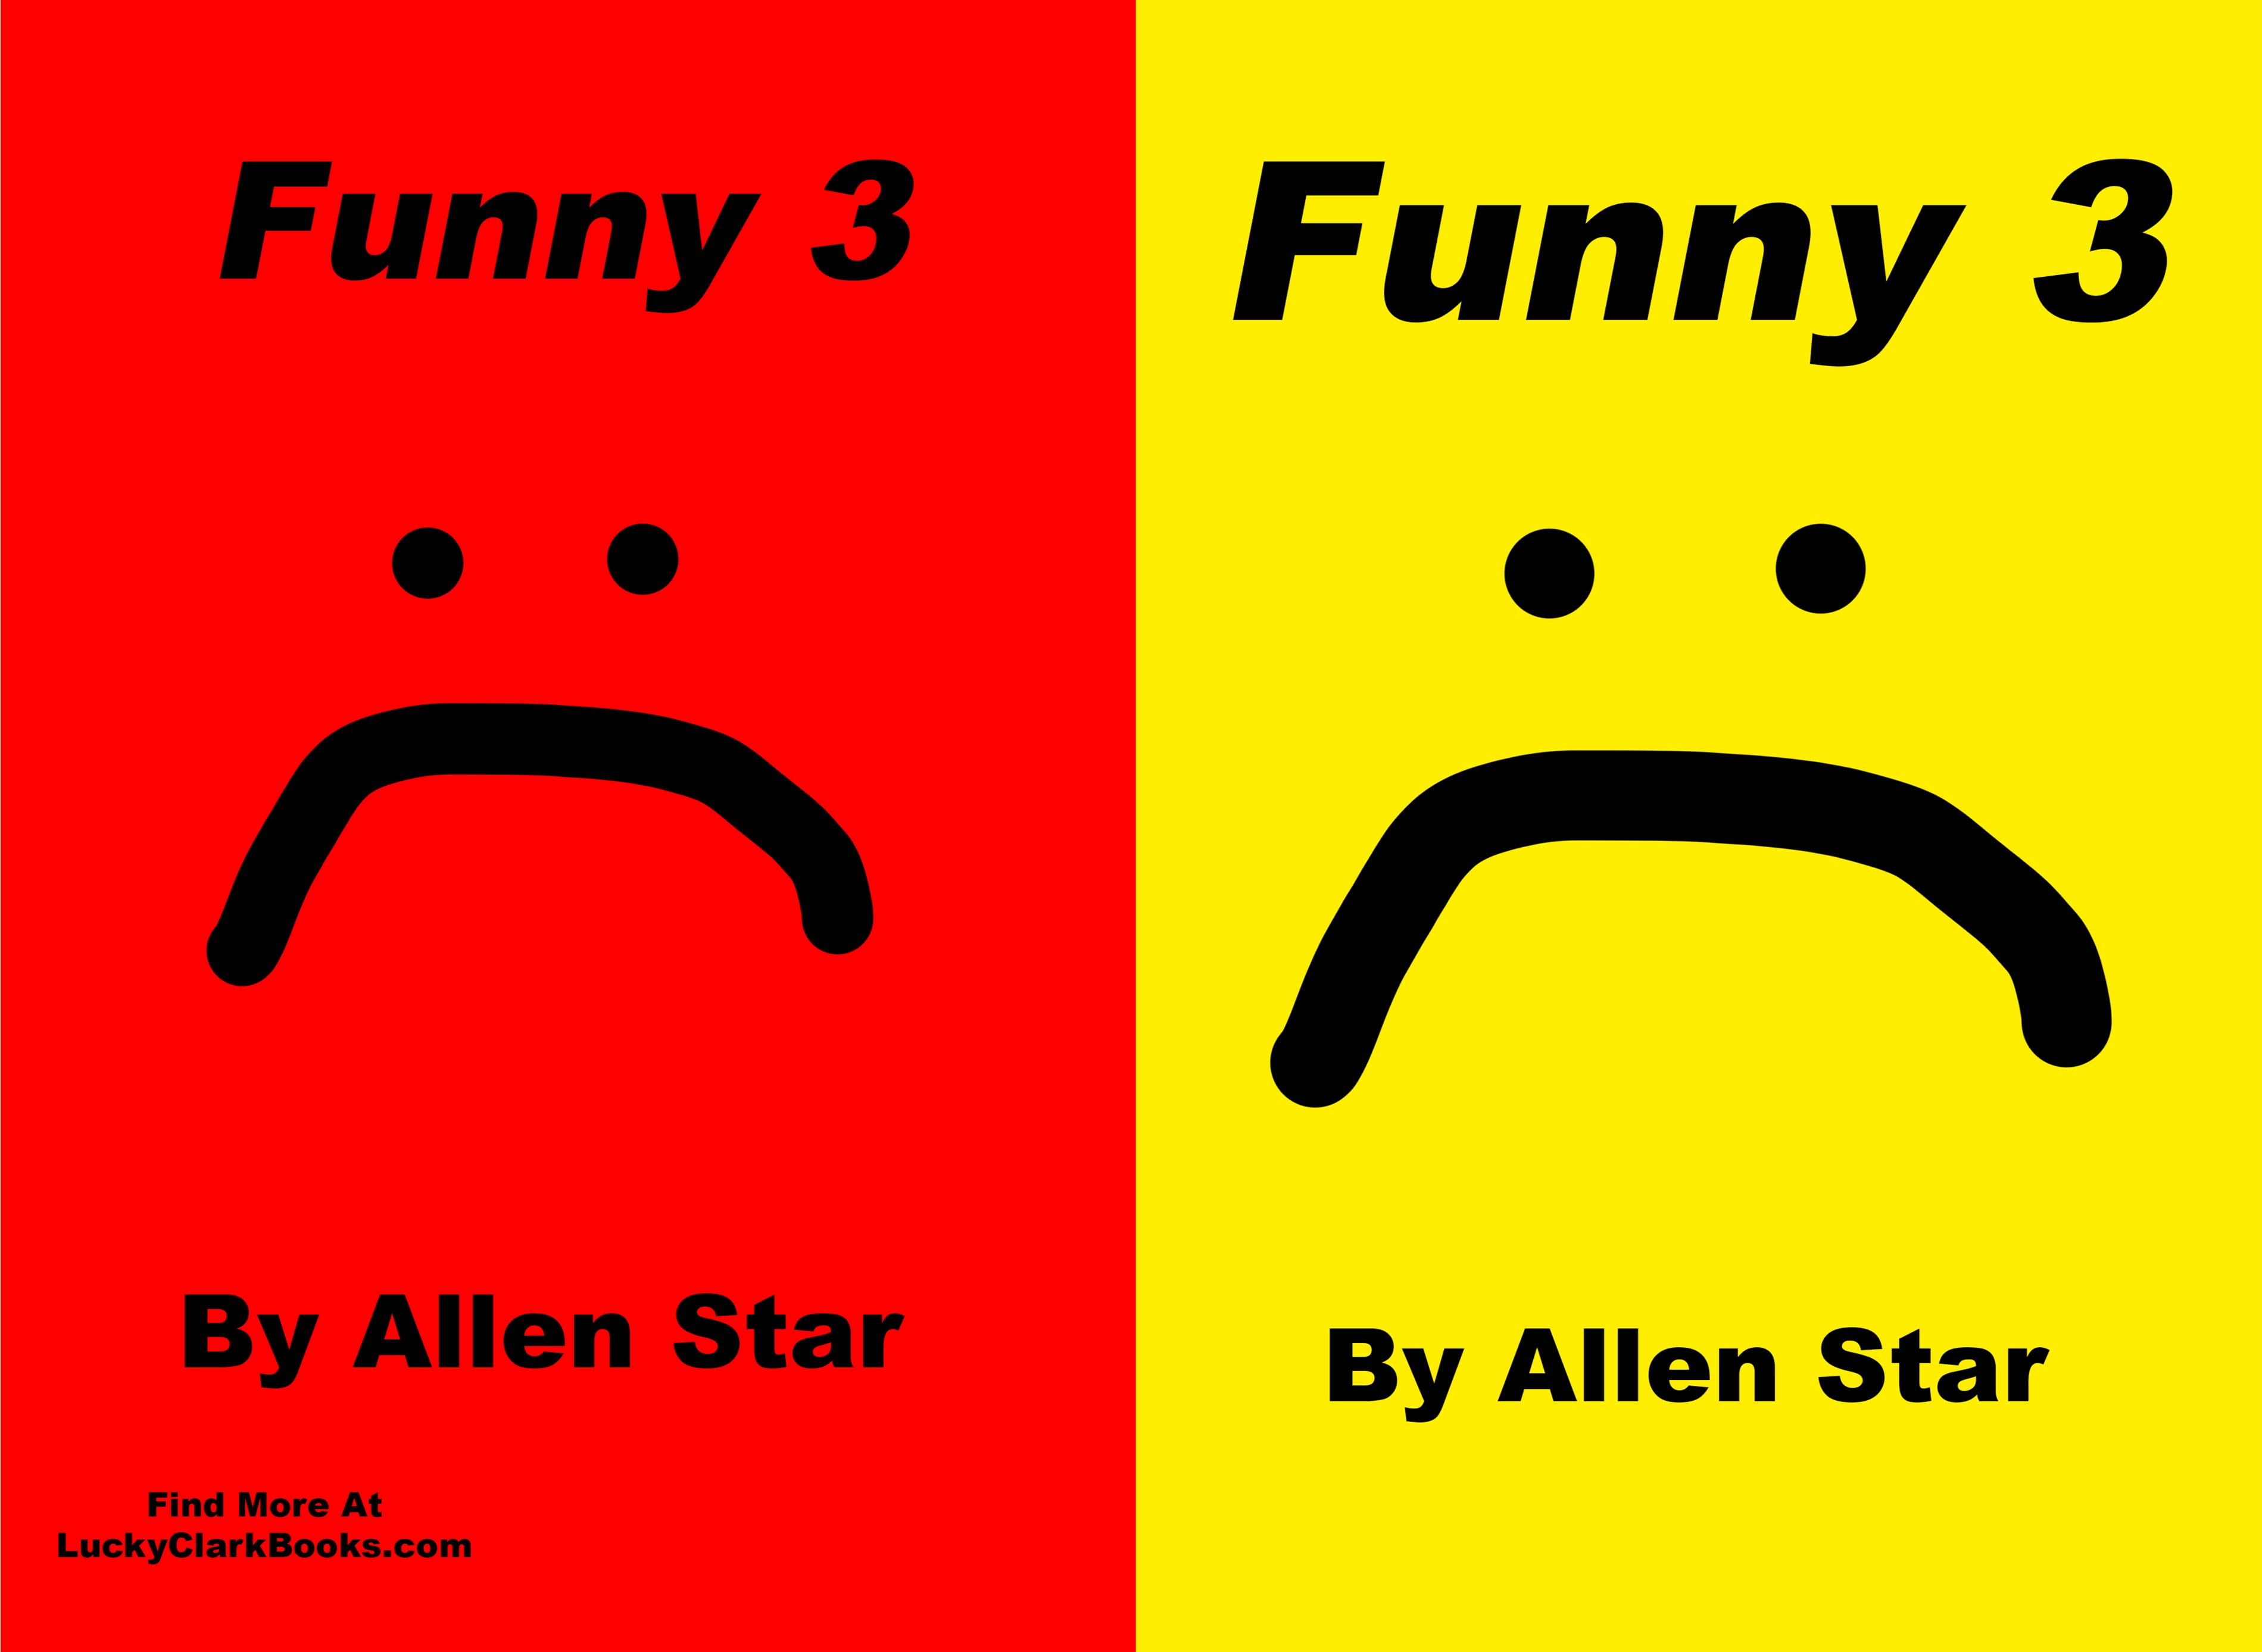 Funny 3 cover image